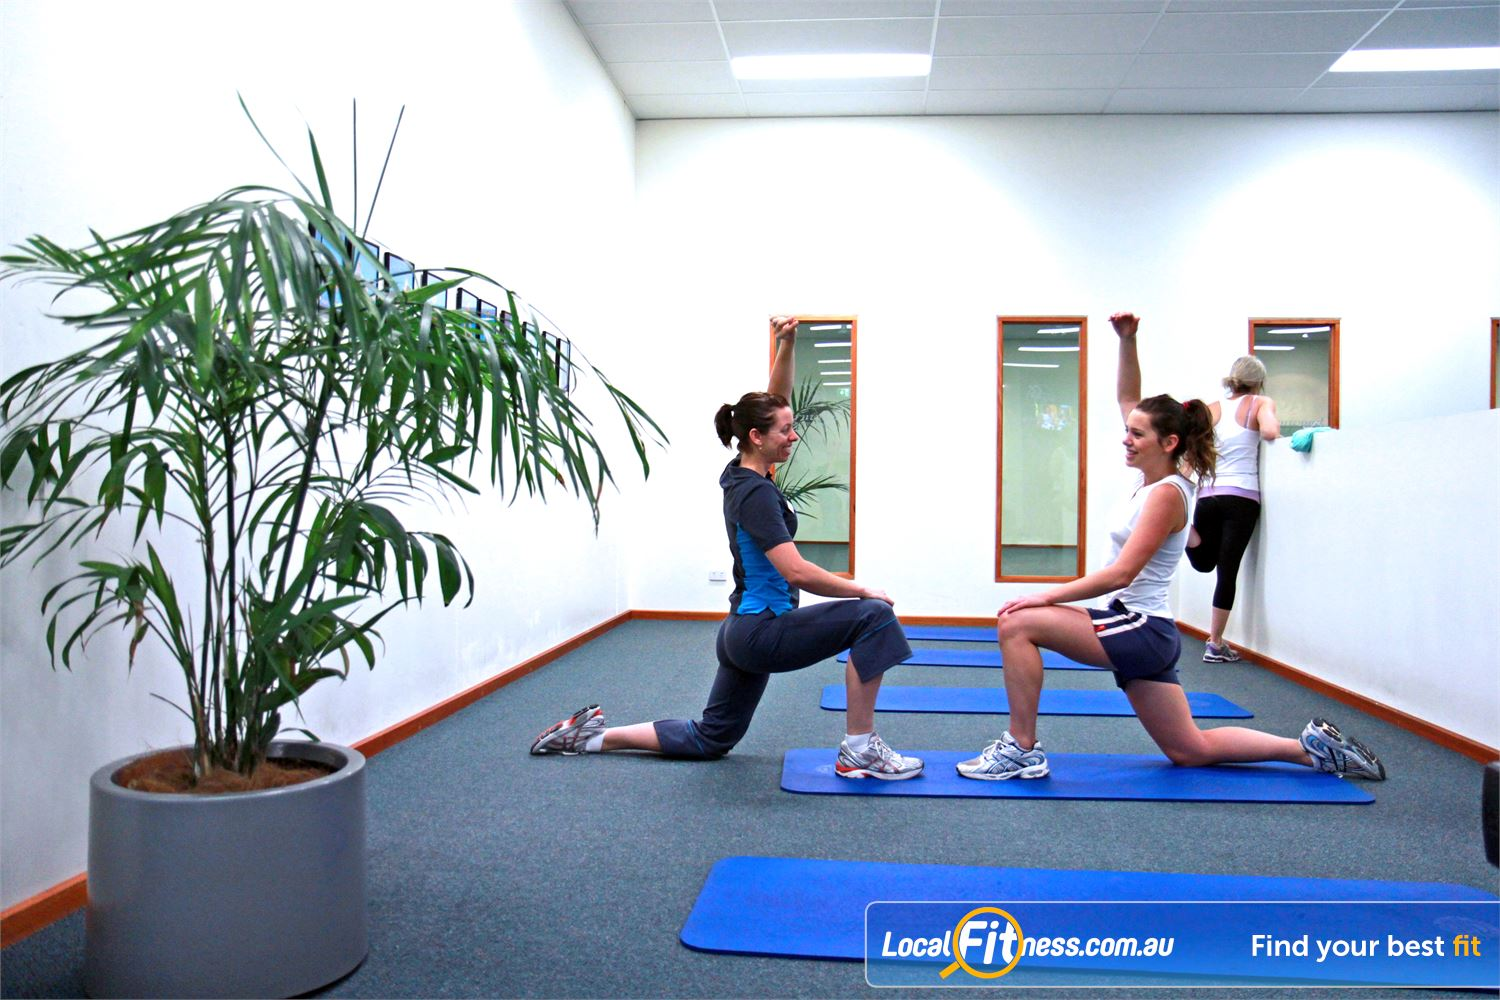 Fernwood Fitness Waurn Ponds Fernwood Waurn Ponds trainers will create a enjoyable stretching and ab program to suit you.